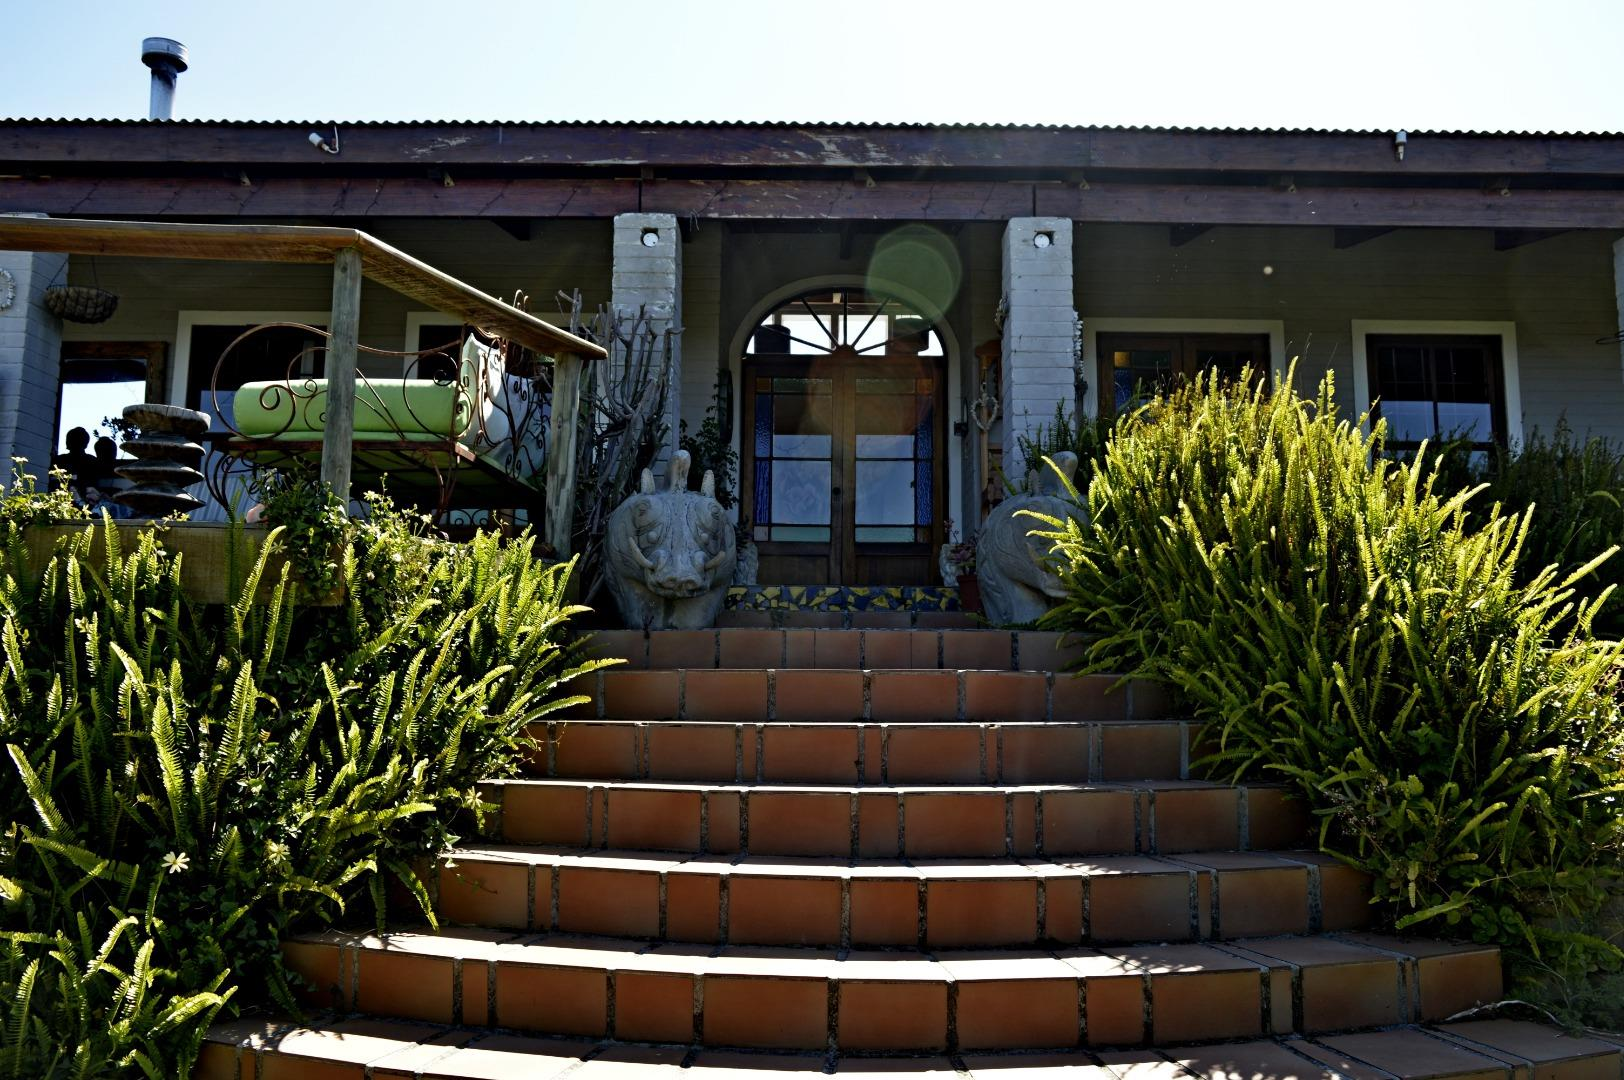 3 Bedroom  House for Sale in Noordhoek - Western Cape